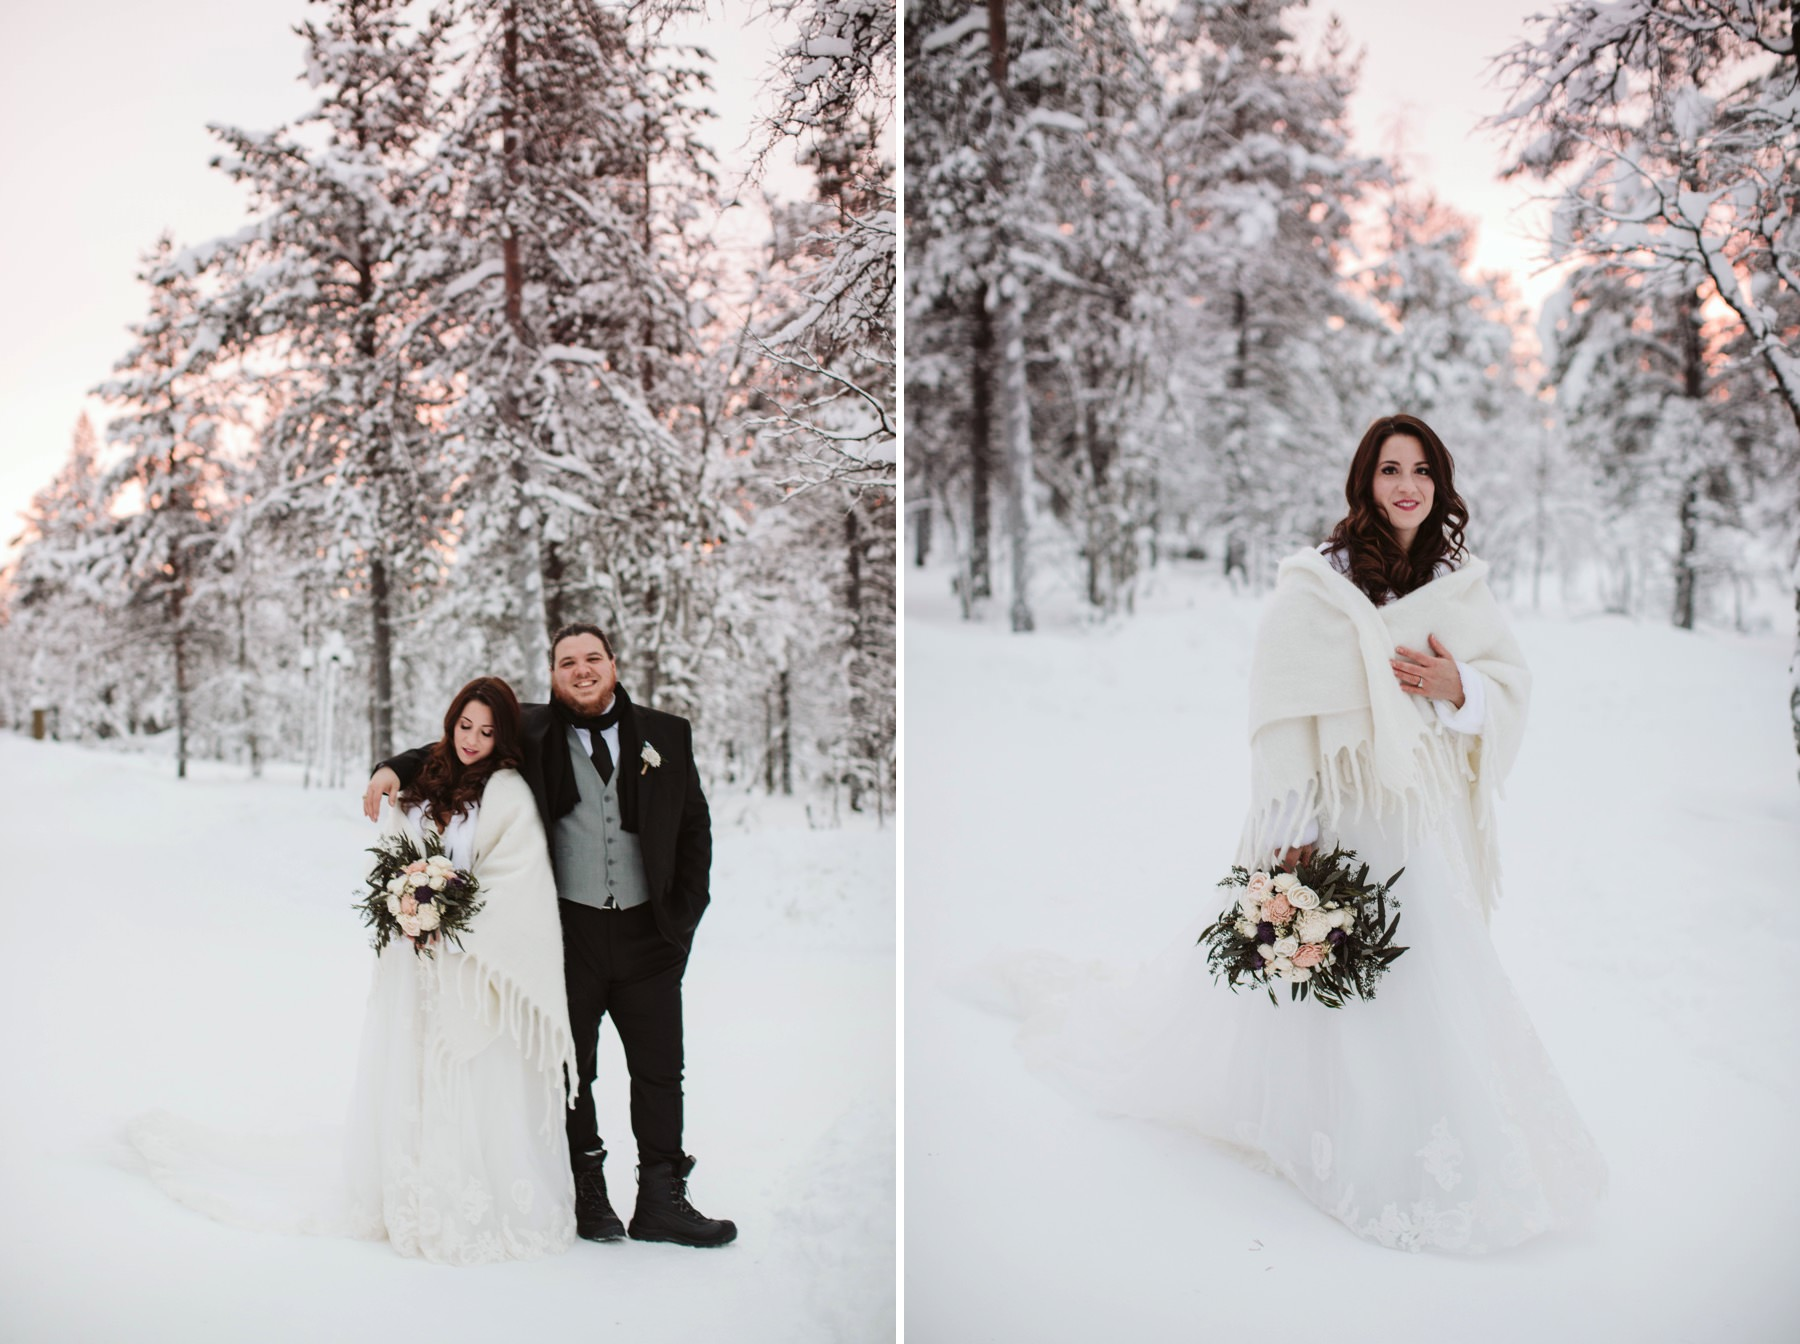 Lapland wedding photographer